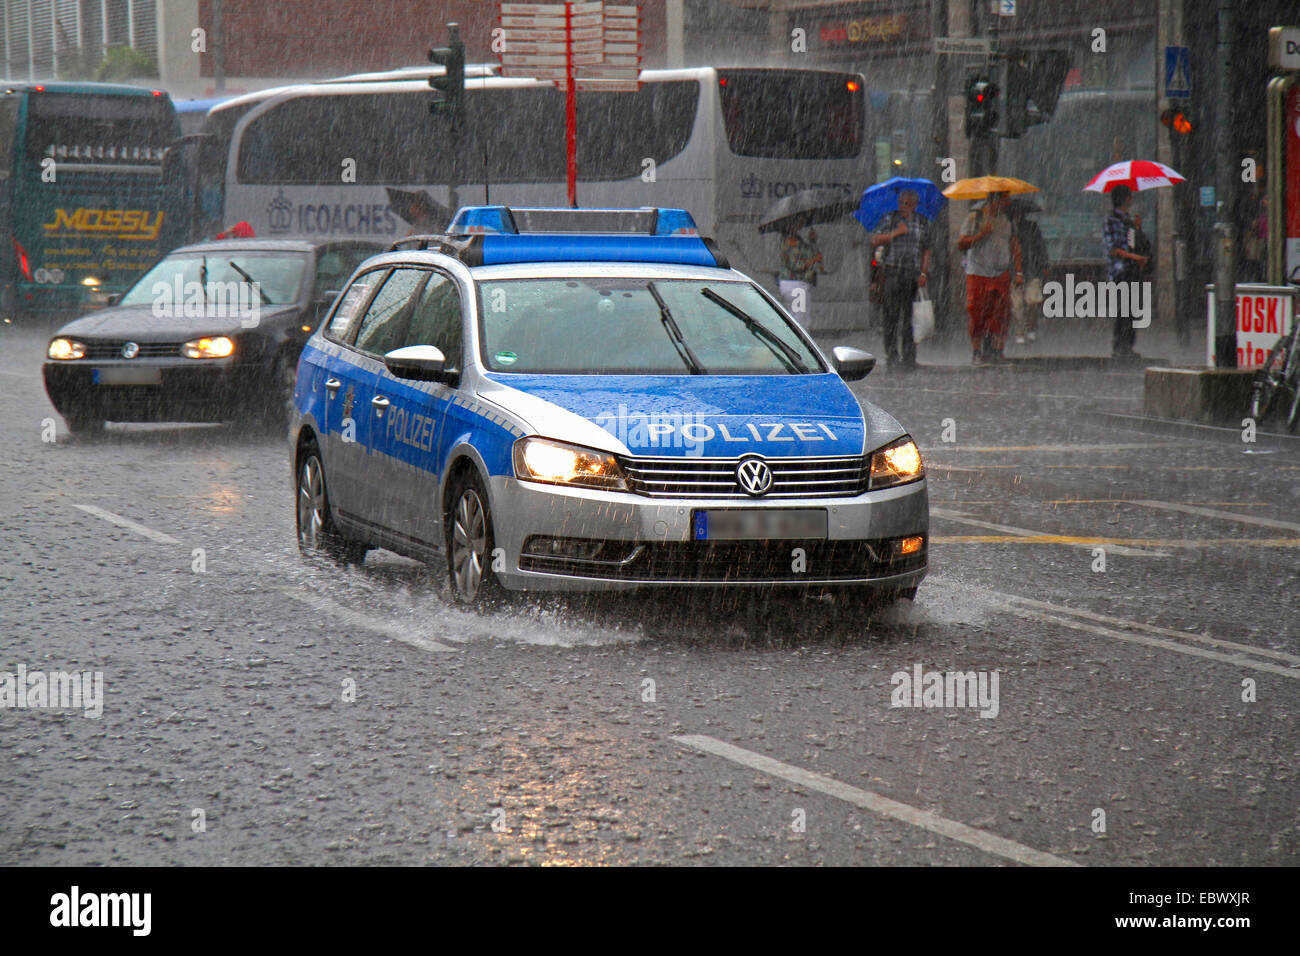 german police car stock photos german police car stock images alamy. Black Bedroom Furniture Sets. Home Design Ideas